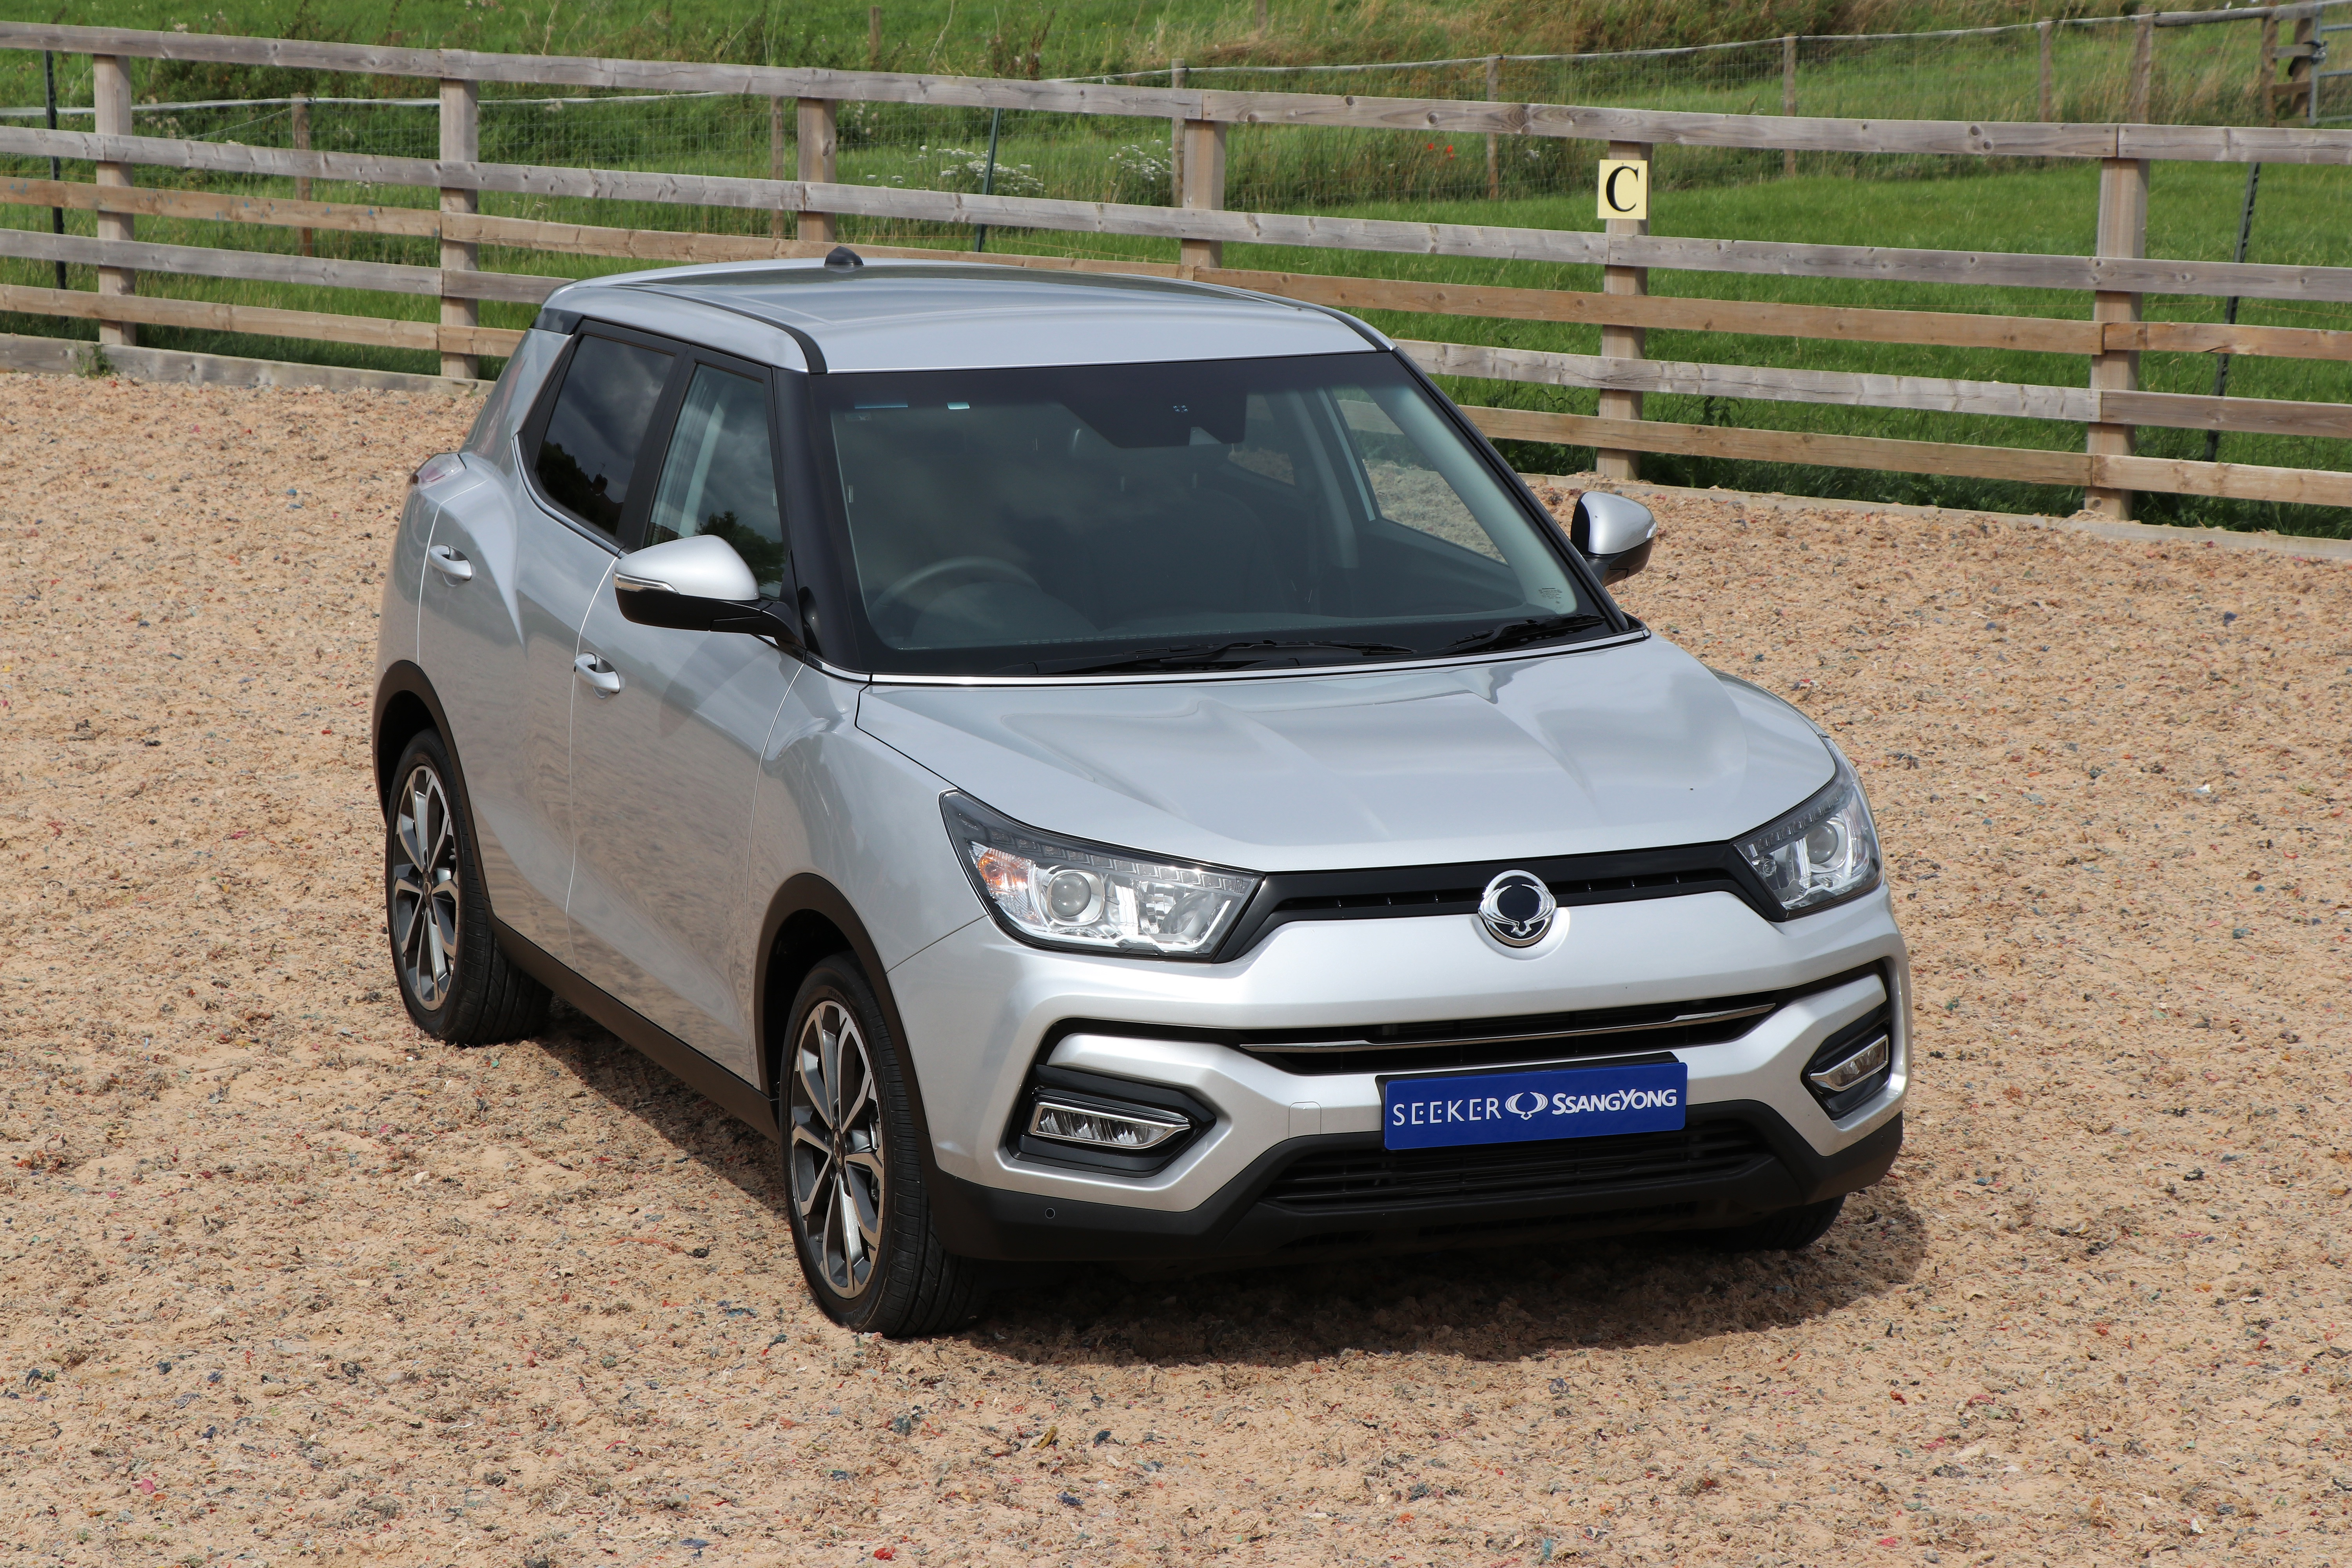 Save £3,000 on a brand new Tivoli Ultimate Petrol at Seeker SsangYong!  Limited stock!